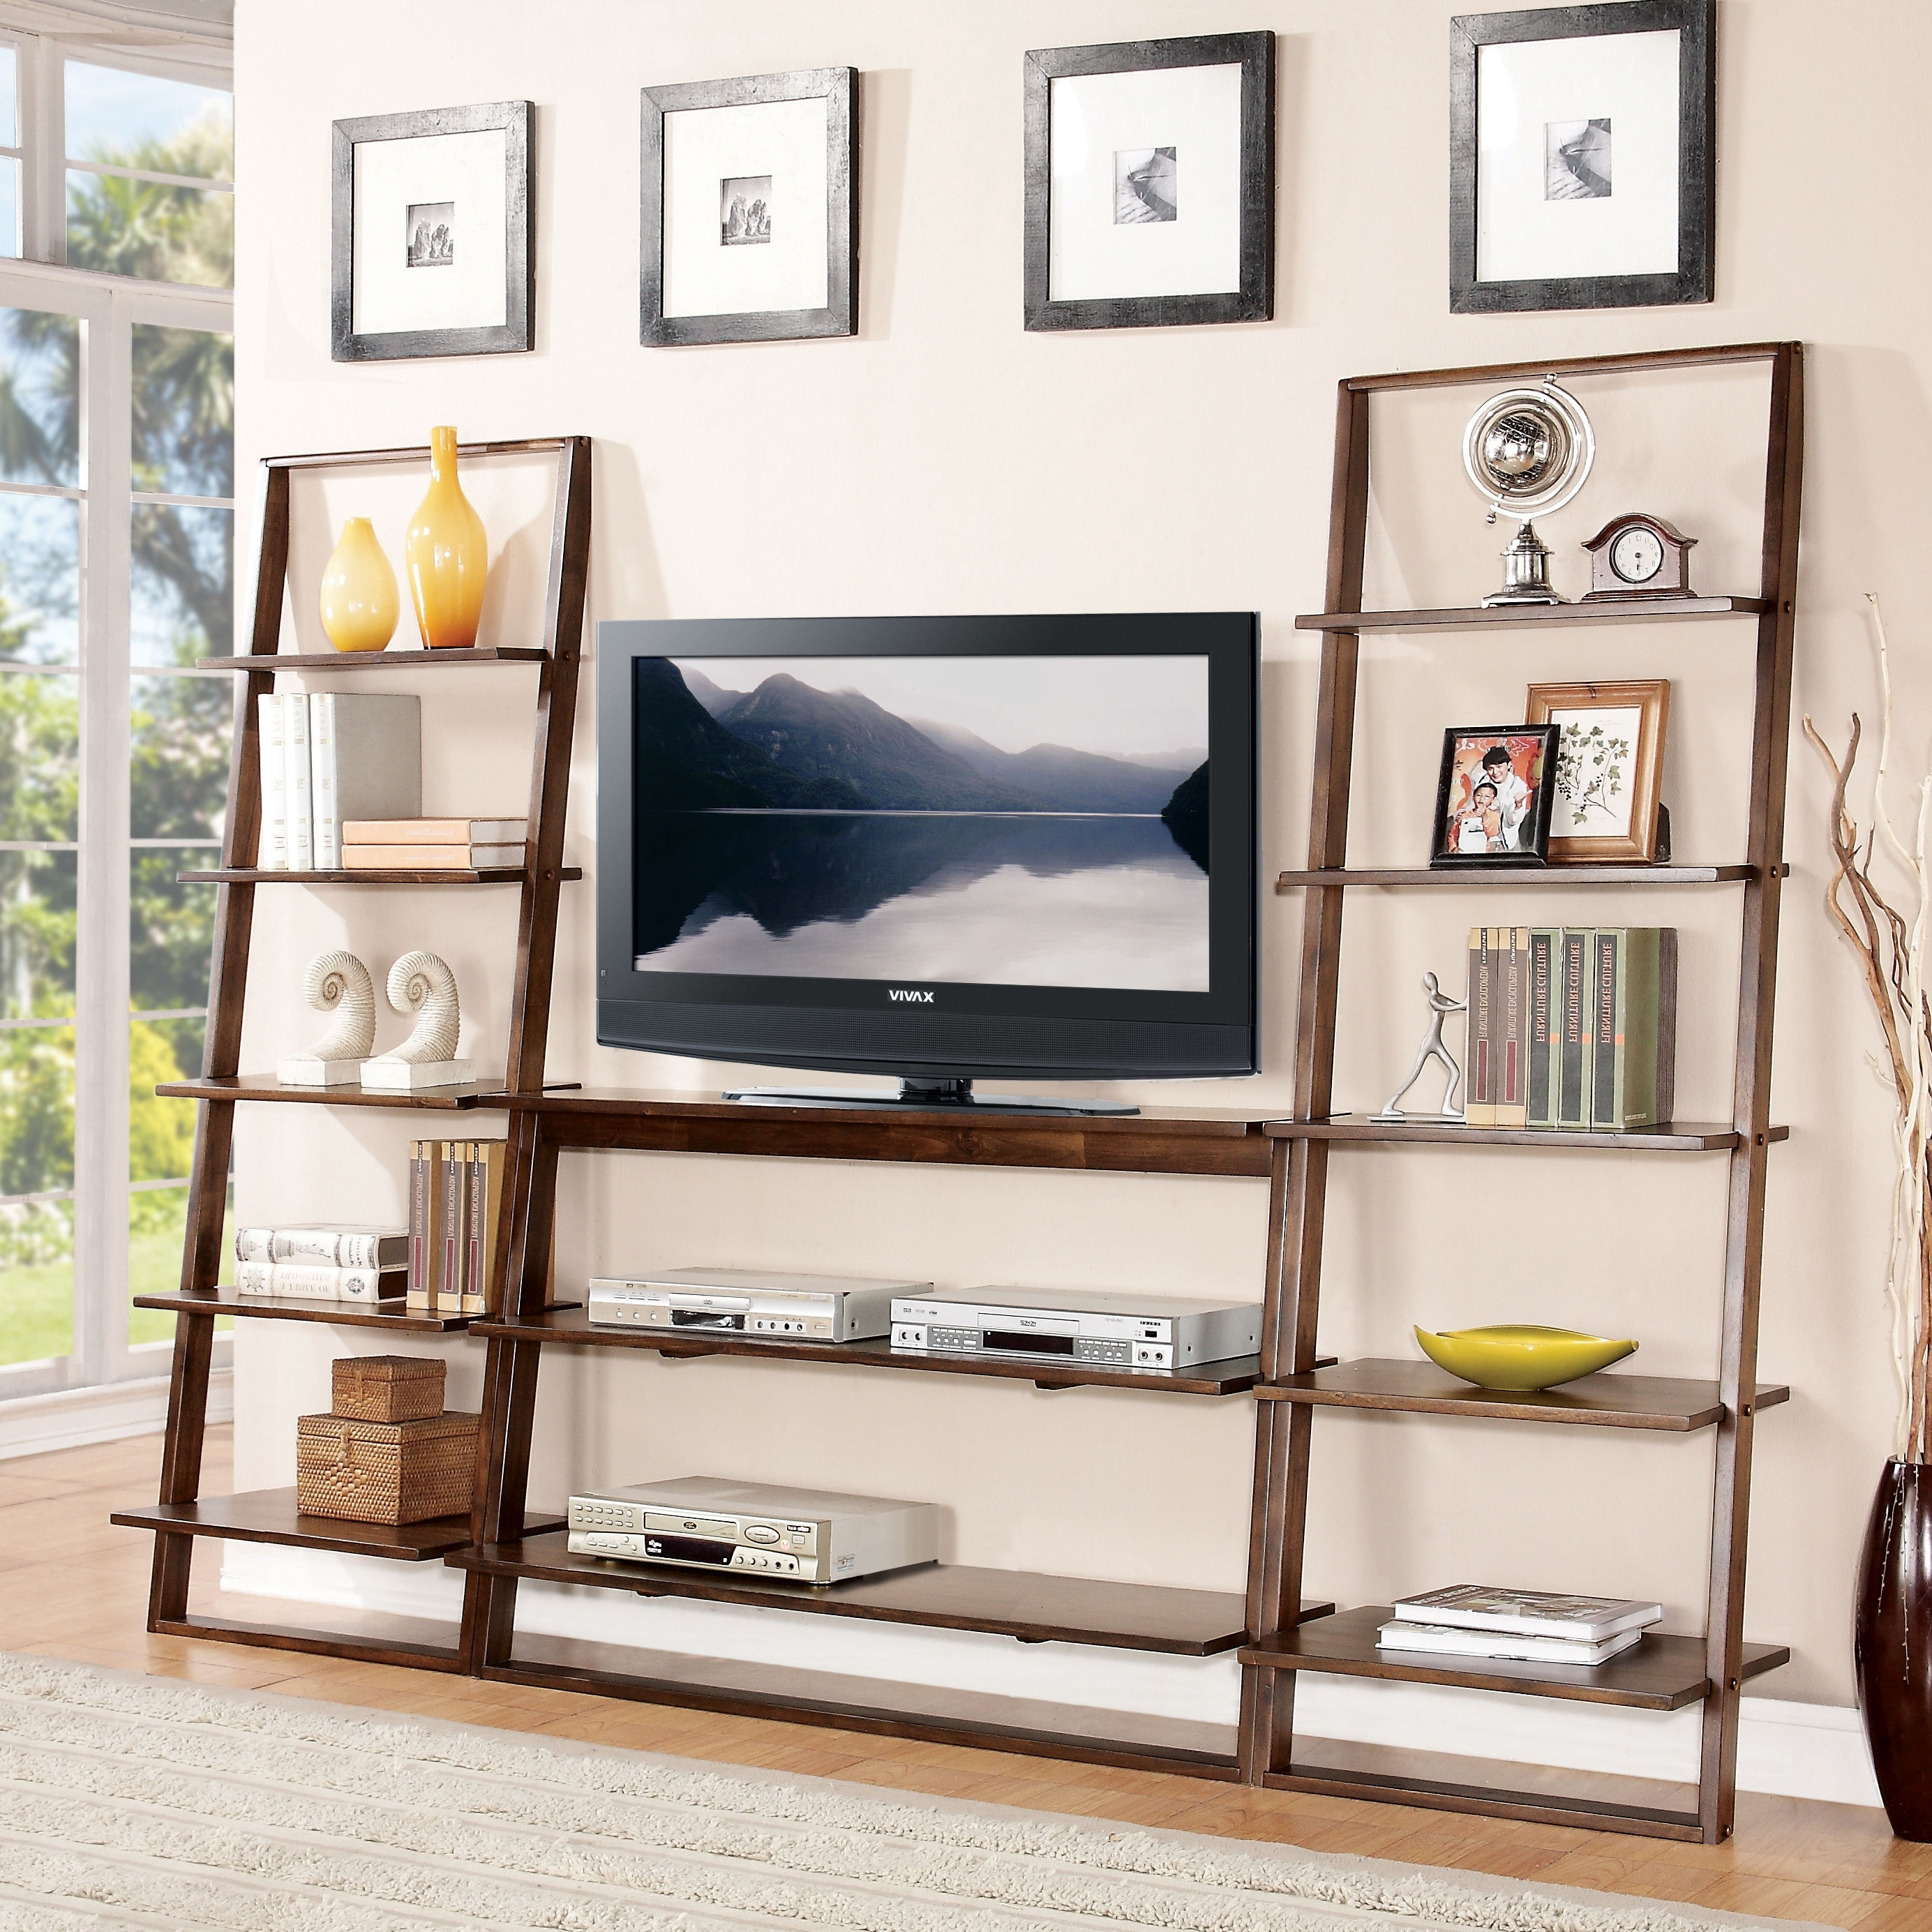 Contemporary Leaning Bookcase Ideas: Minimalist Leaning Bookcase For Current Bookcases Tv Stand (View 8 of 15)